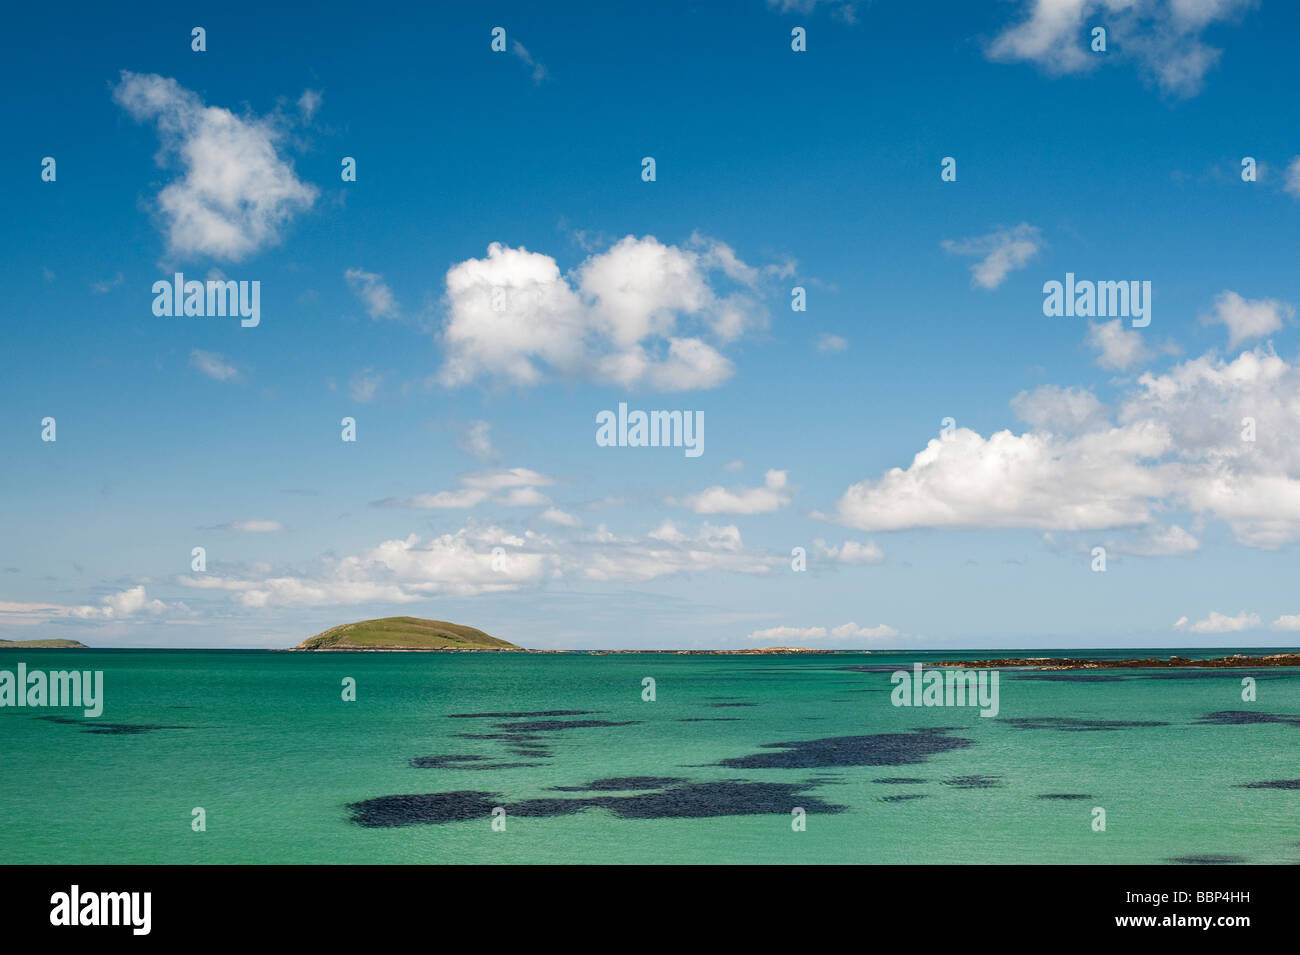 Lingeigh island off Eriskay, South Uist, Outer Hebrides, Scotland - Stock Image